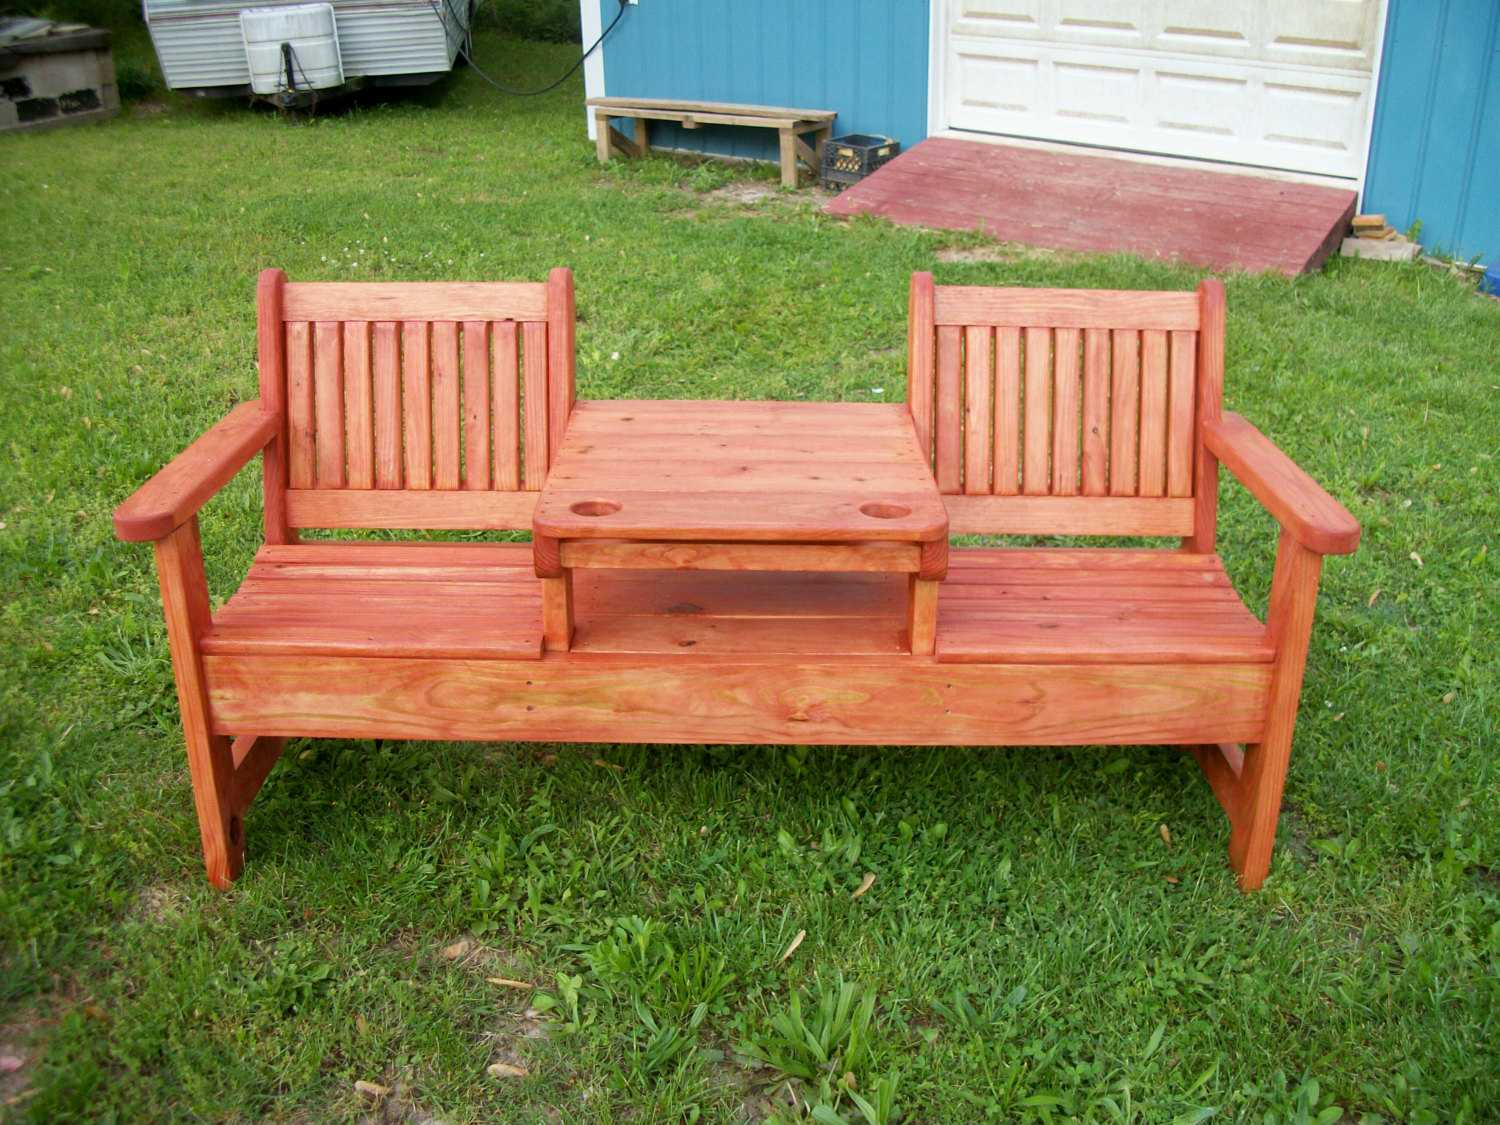 Woodworking outdoor bench patterns PDF Free Download